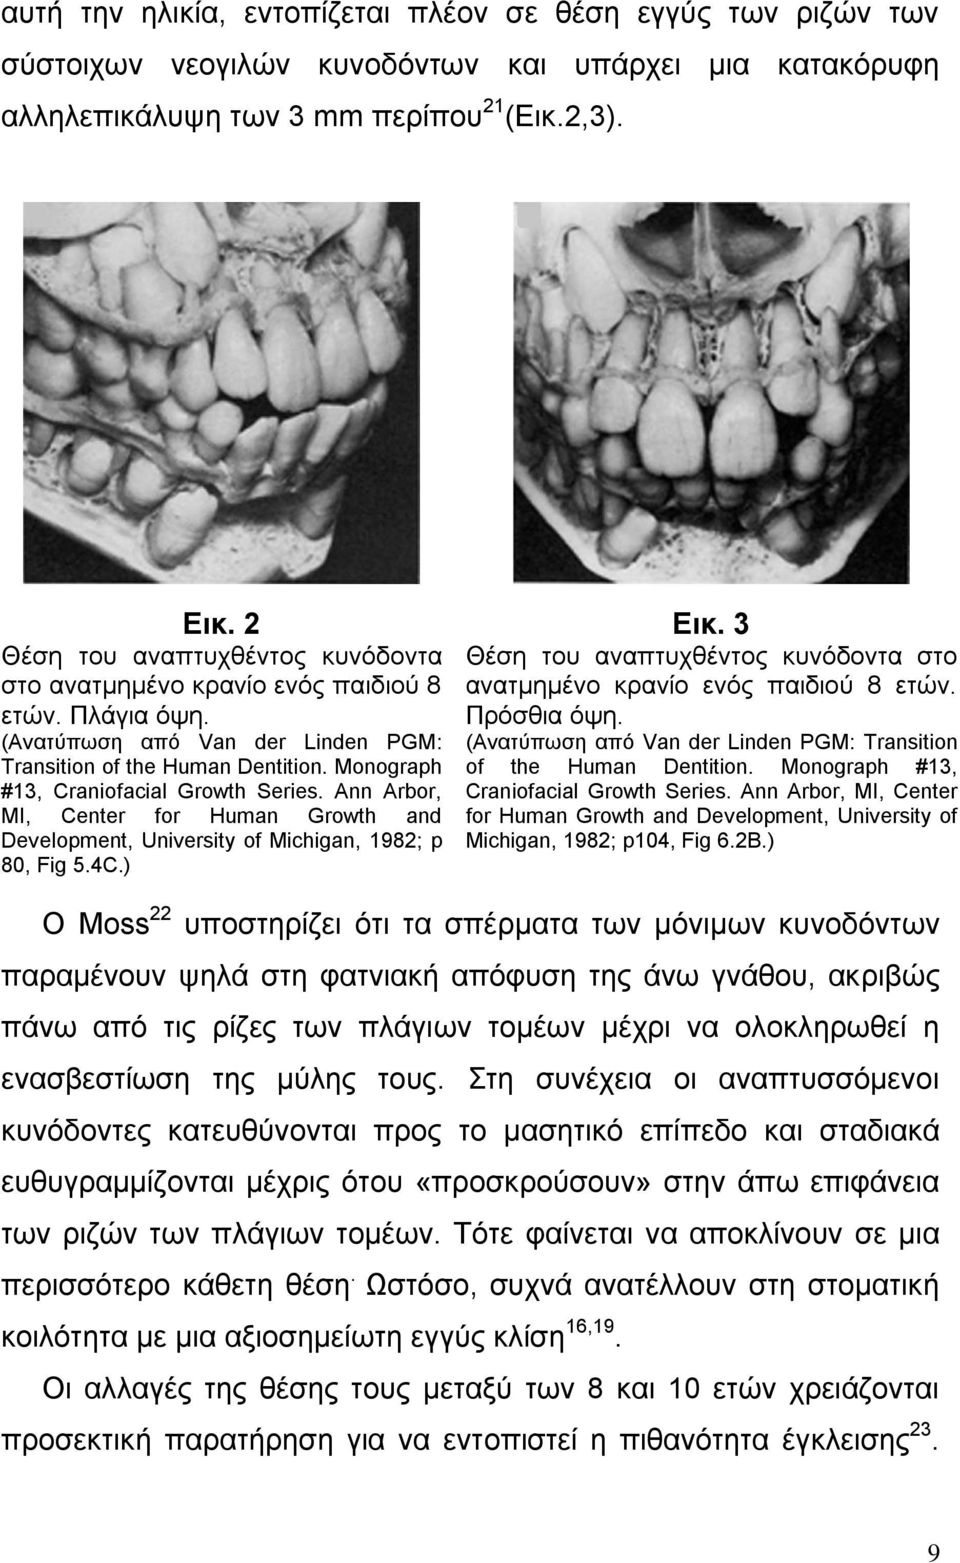 Monograph #13, Craniofacial Growth Series. Ann Arbor, MI, Center for Human Growth and Development, University of Michigan, 1982; p 80, Fig 5.4C.) Δηθ.